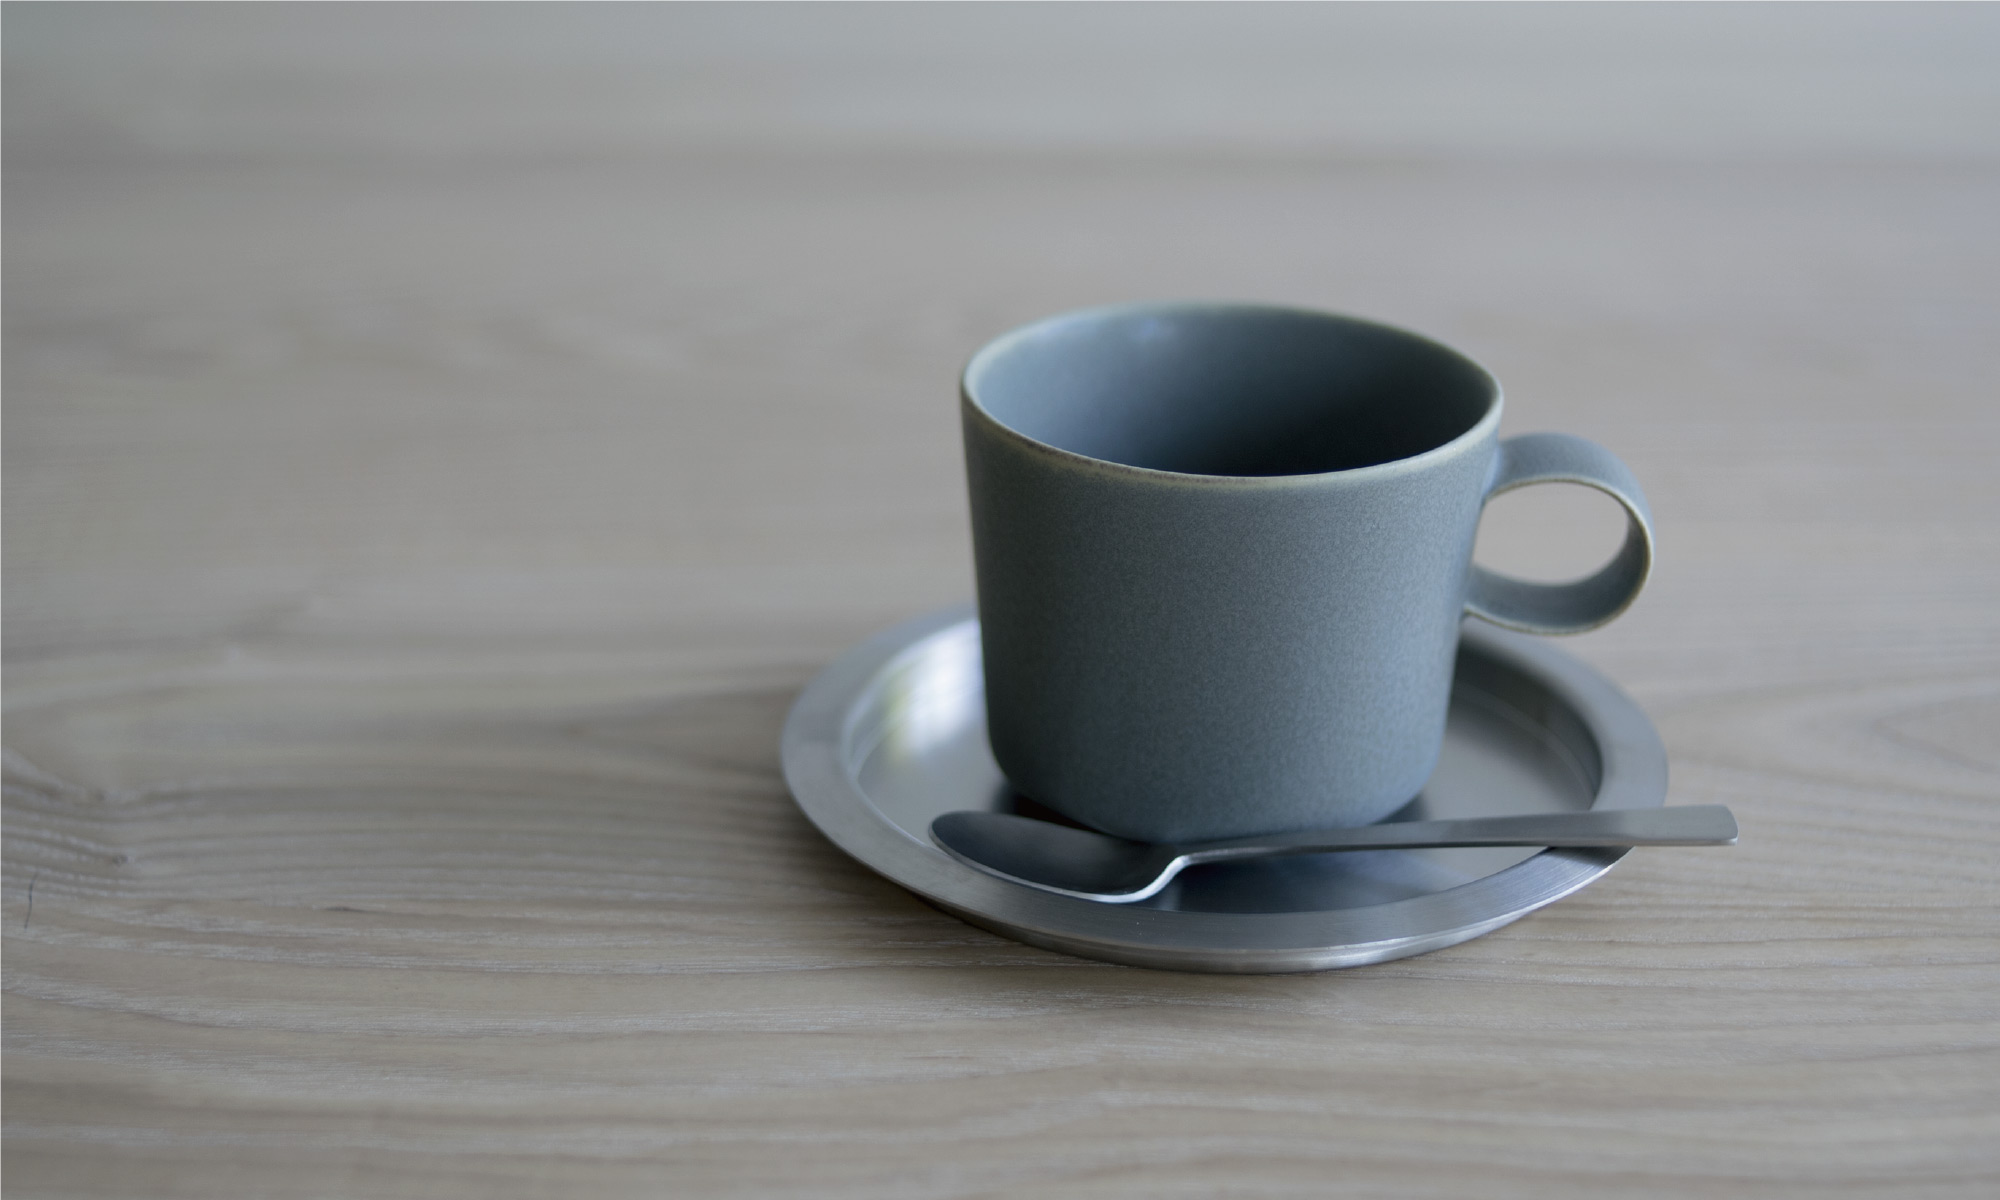 stainless coaster & unjour nuit cup